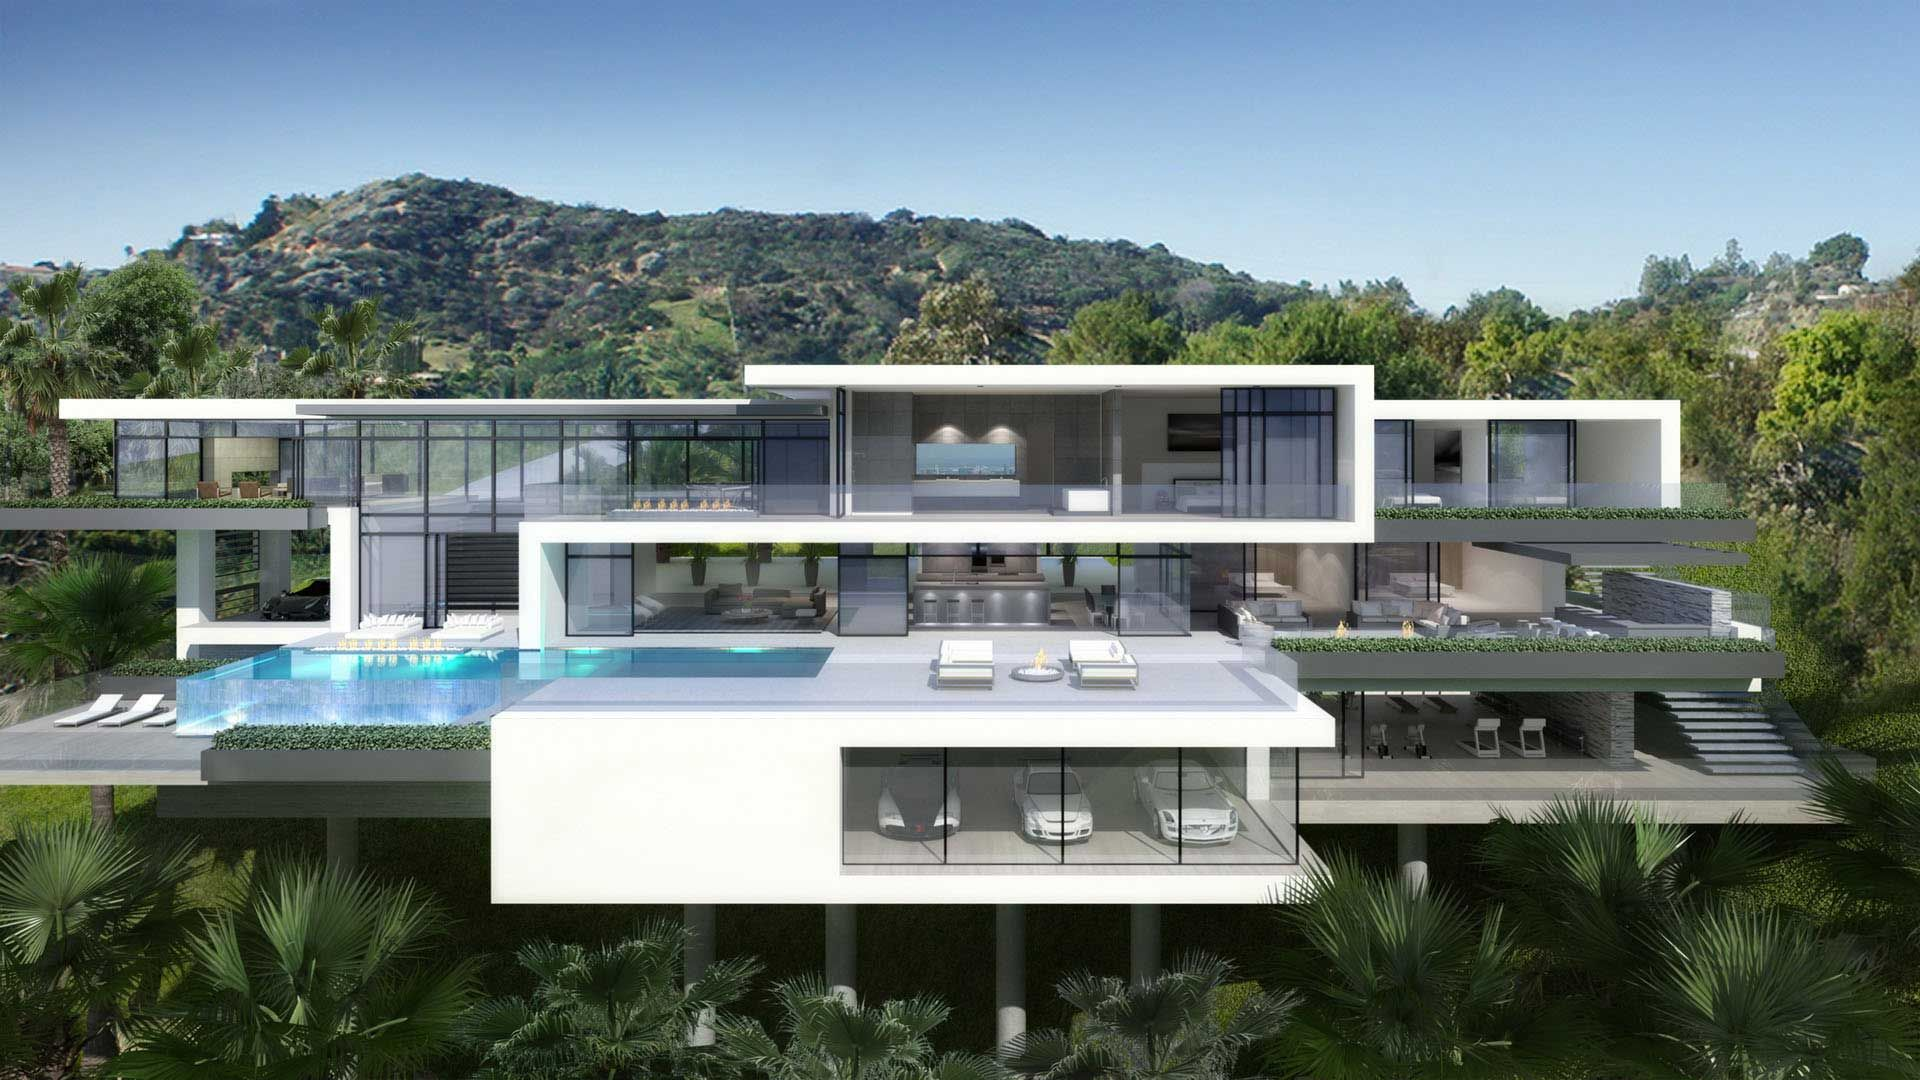 Best Kitchen Gallery: Two Modern Mansions On Sunset Plaza Drive In La By Ameen Ayoub of Modern Houses In Los Angeles on rachelxblog.com